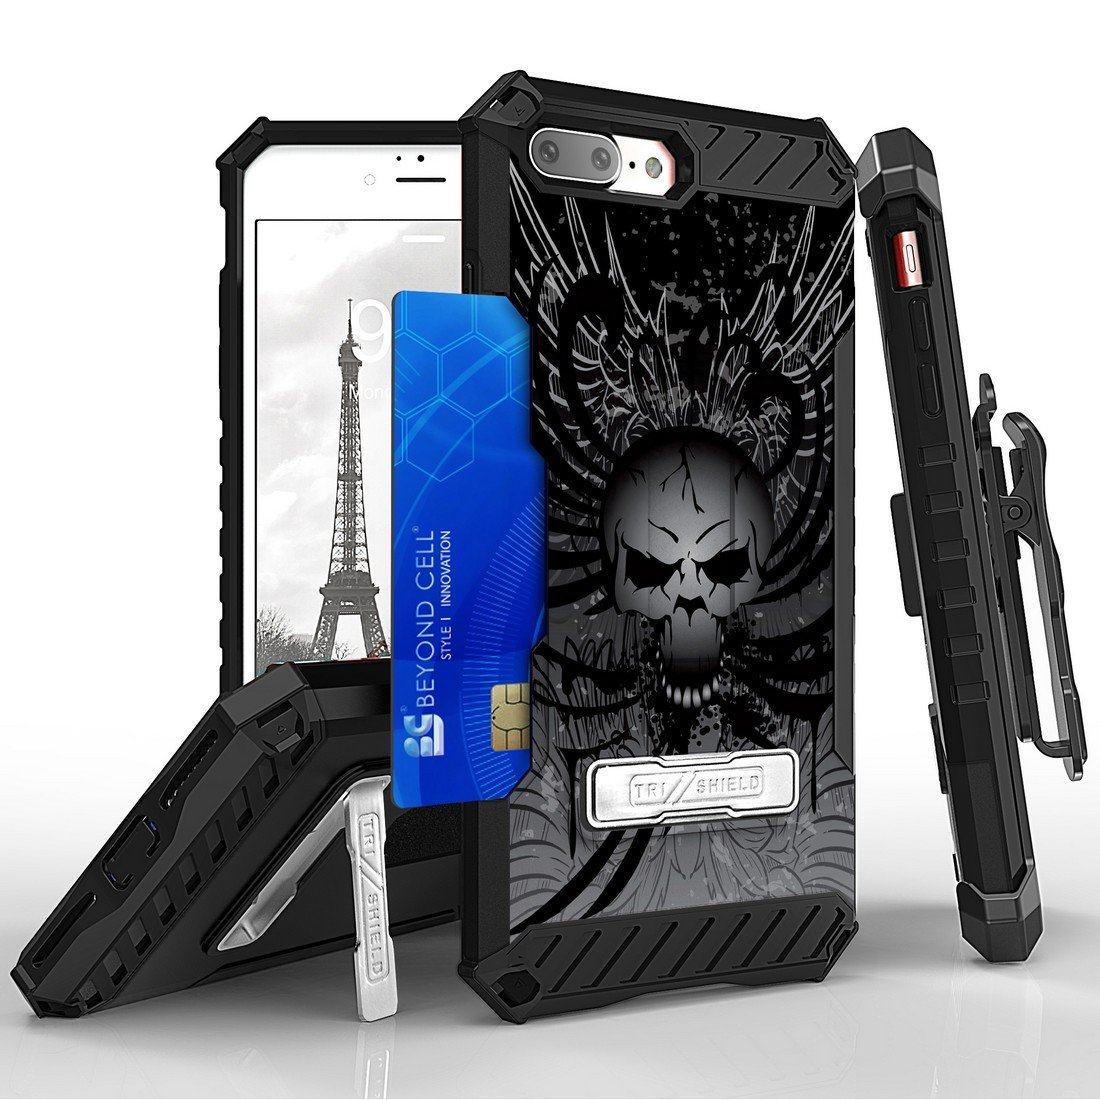 Apple iPhone 8 Plus / 7 Plus - Accessory Bundle: [Skull Wings] Tri-Shield Holster Case, Cellet [Apple MFI Certified] 2.1A / 10W Retractable Lightning Car Charger and Atom LED